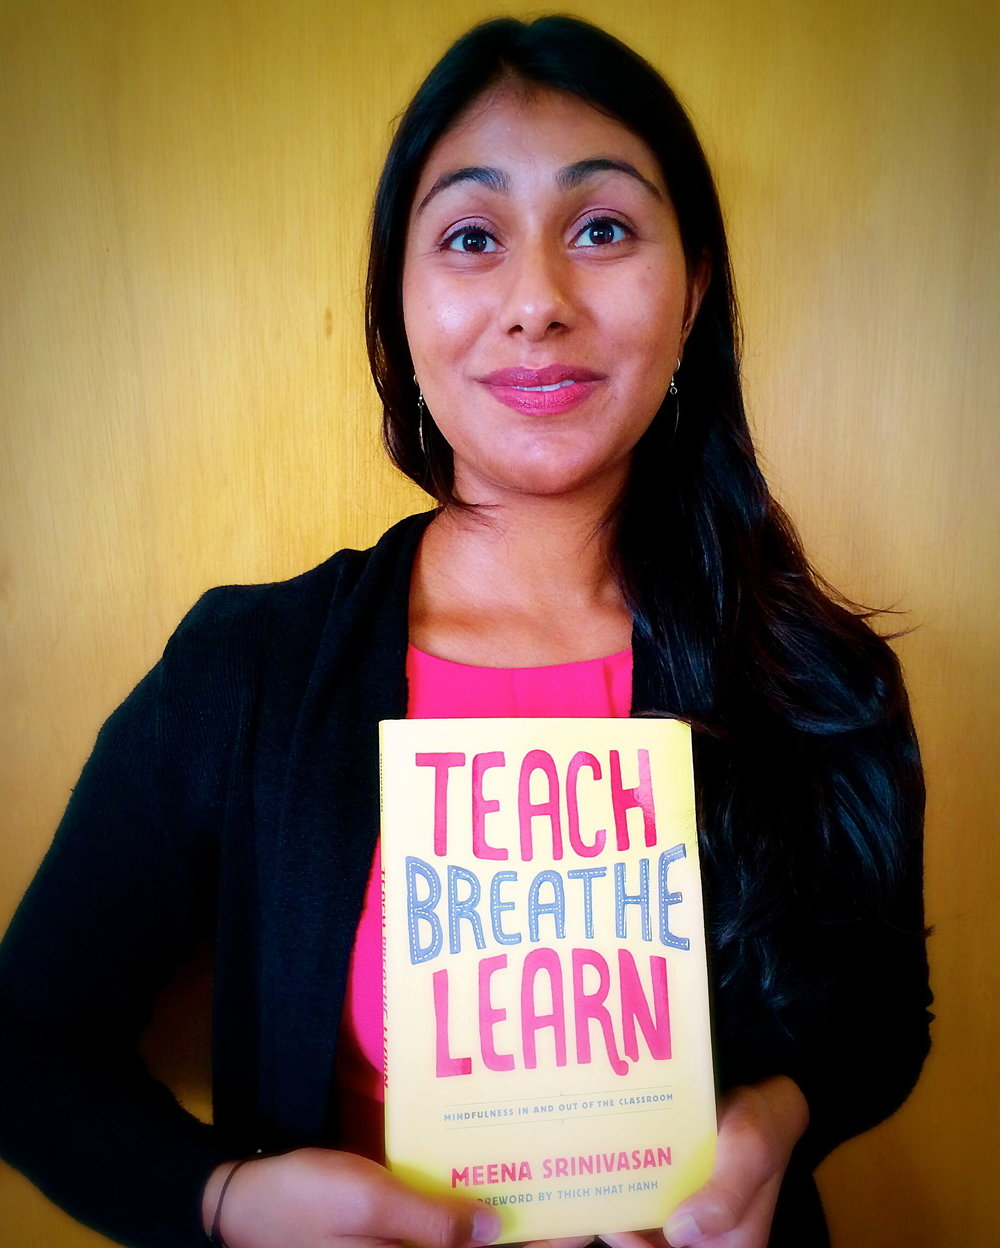 """- In Teach, Breathe, Learn, Meena Srinivasan highlights how mindfulness can be an effective tool in the classroom. What makes this book truly unique is her perspective as a classroom teacher, wrestling daily with the conditions about which she writes.Teach, Breathe, Learn is designed for educators at all levels, parents interested in sharing mindfulness with their children, and anyone curious about how to cultivate their own mindfulness practice and eventually teach mindfulness to others.Teach, Breathe, Learn provides accessible, practical application of mindfulness to overcome challenges faced during the school day.Testimonials from students and colleagues are woven throughout the book.Part 1 helps develop compassion and shift from """"reacting"""" to """"responding"""" to demands.Part 2 offers techniques for cultivating loving-kindness, gratitude and seeing others as oneself.The last section of the book introduces a curriculum anyone can use to teach mindfulness, replete with lesson plans, handouts, and homework assignments."""